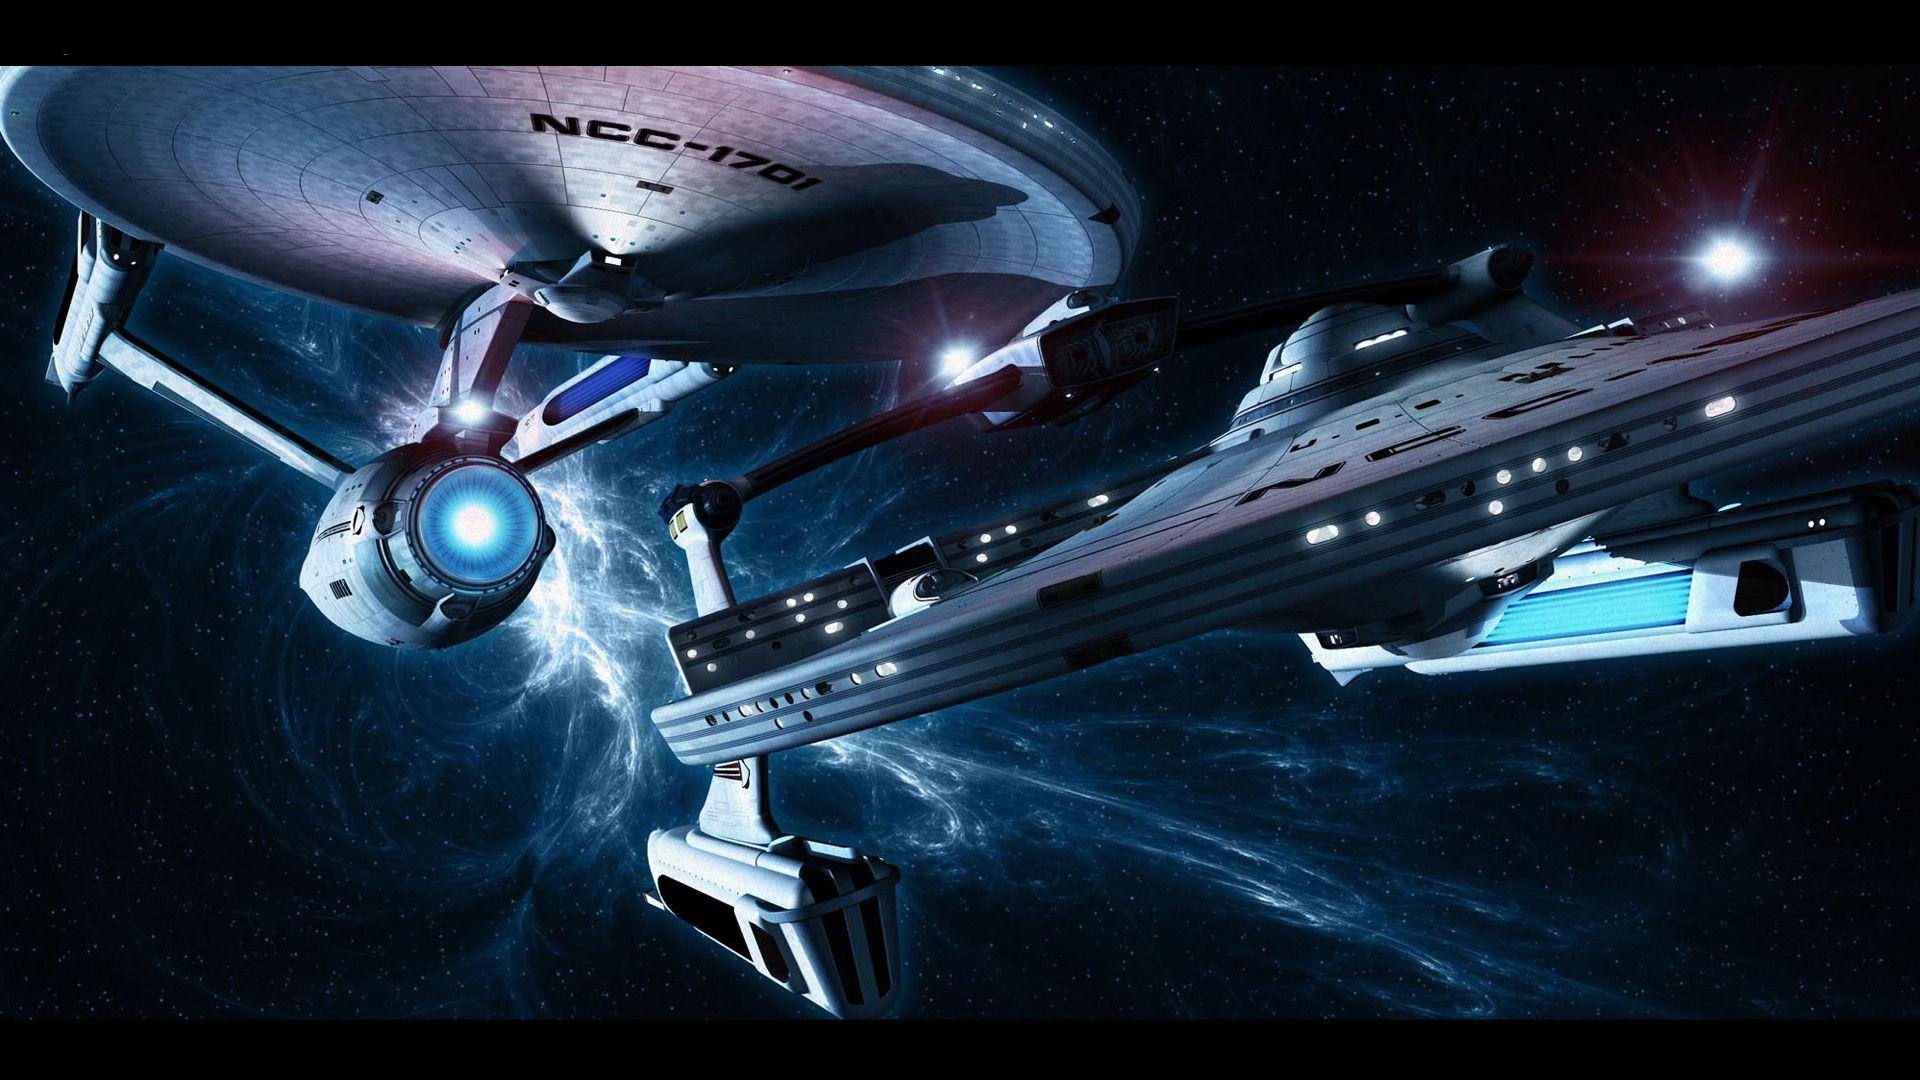 star trek wallpaper by - photo #22